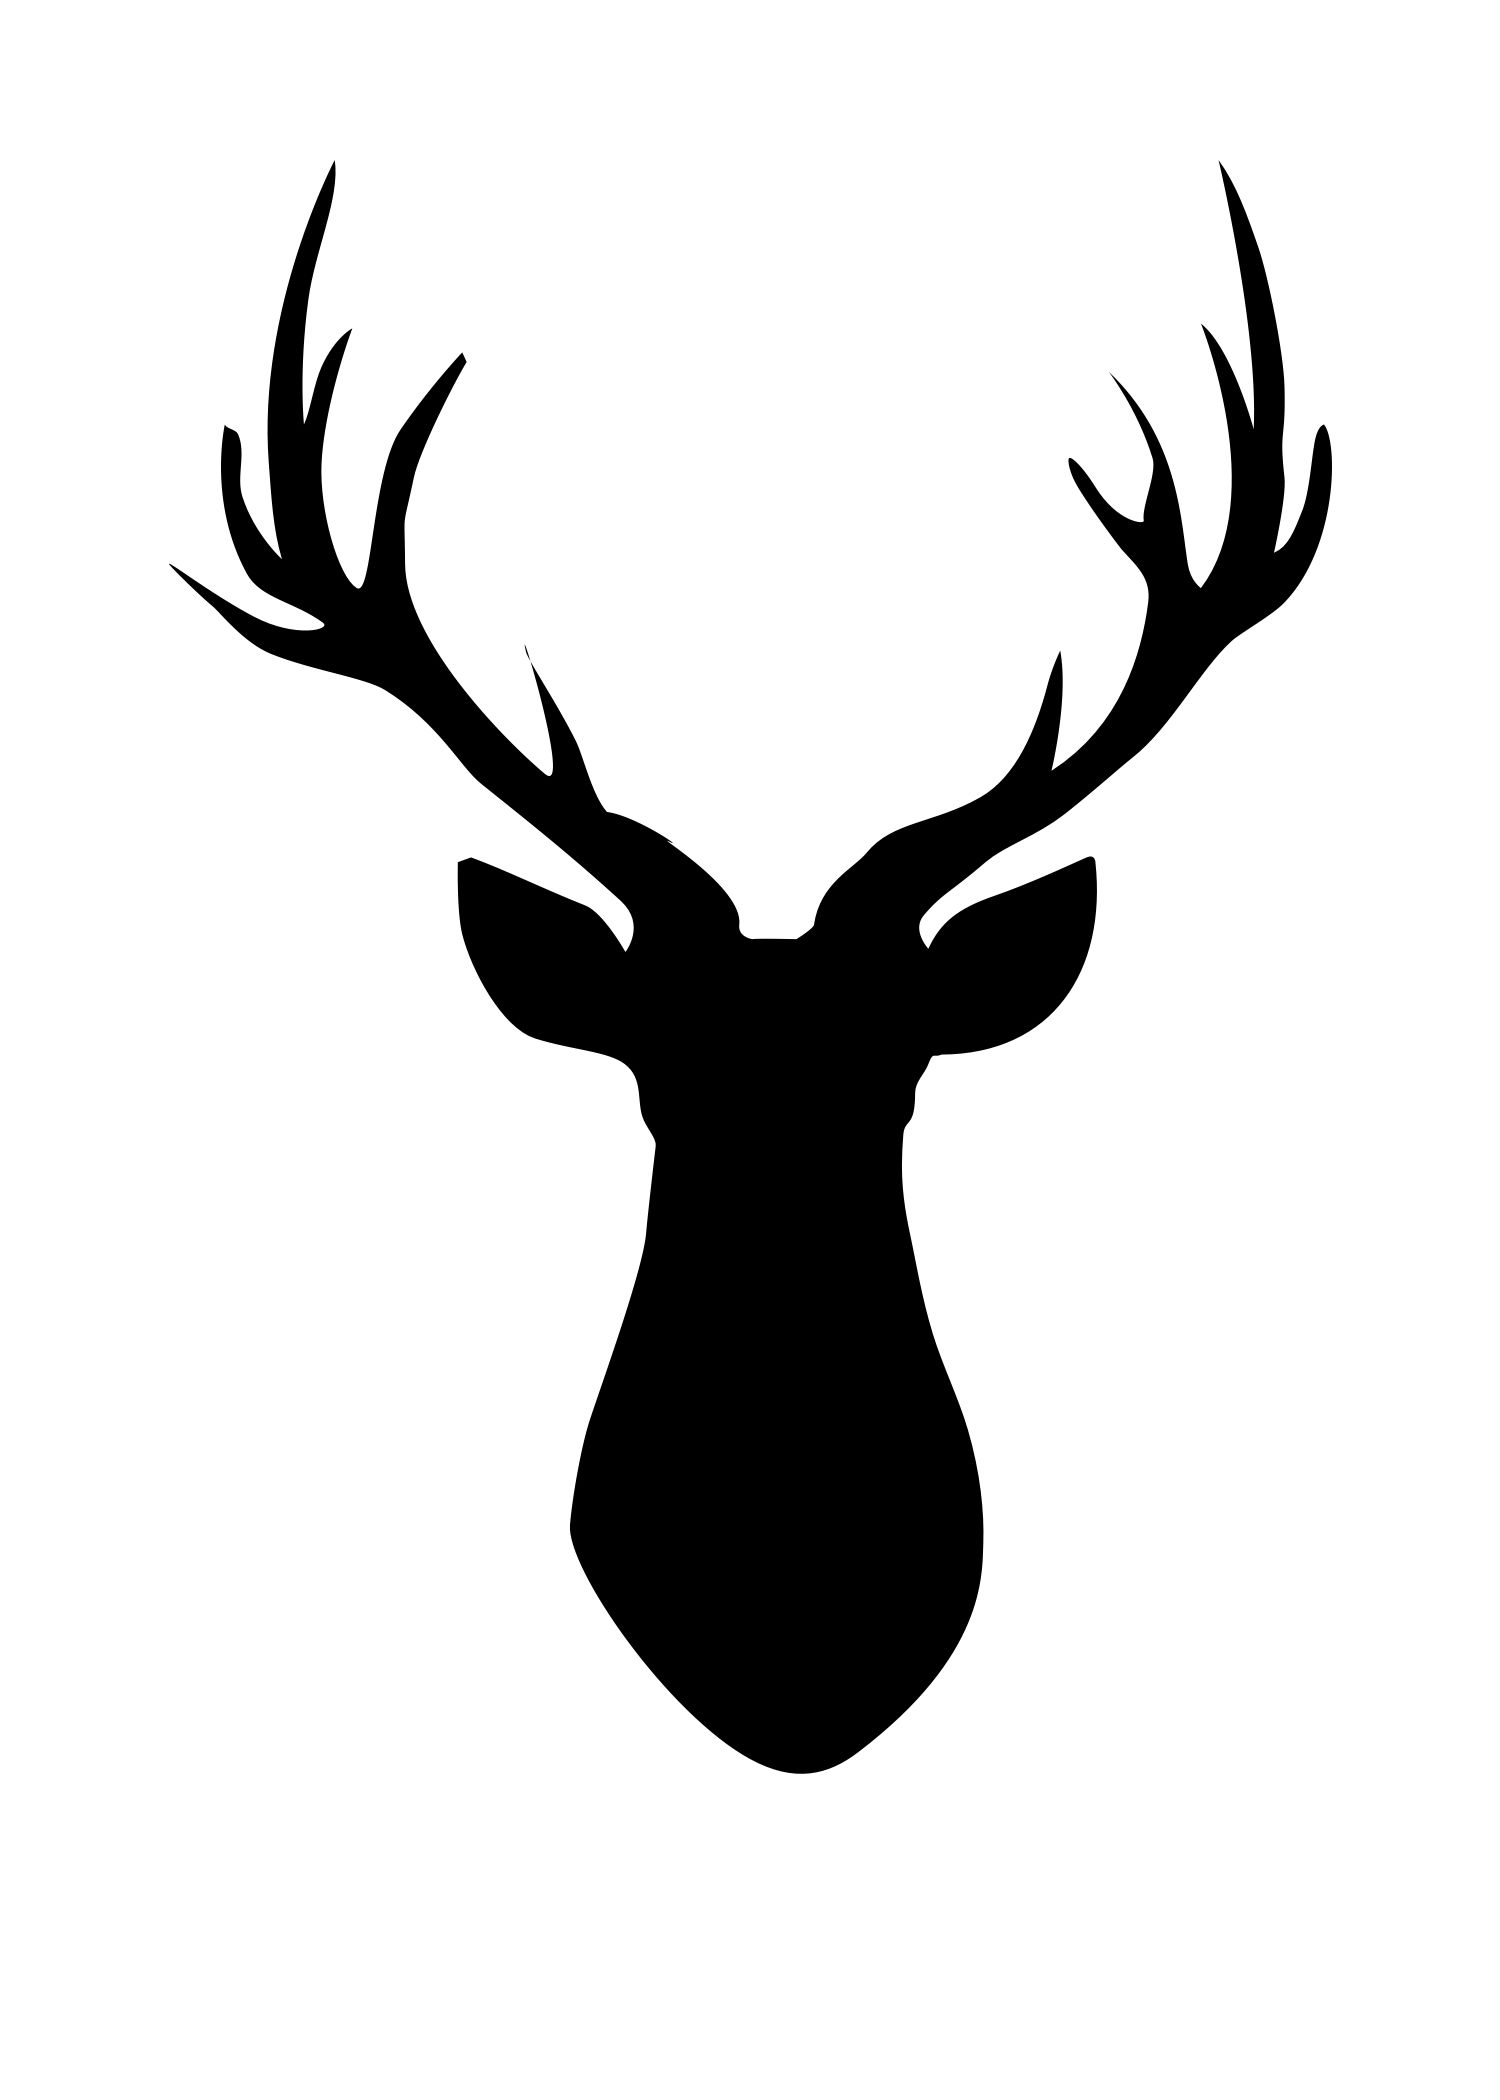 Deer head easy. Pallet silhouette cameo